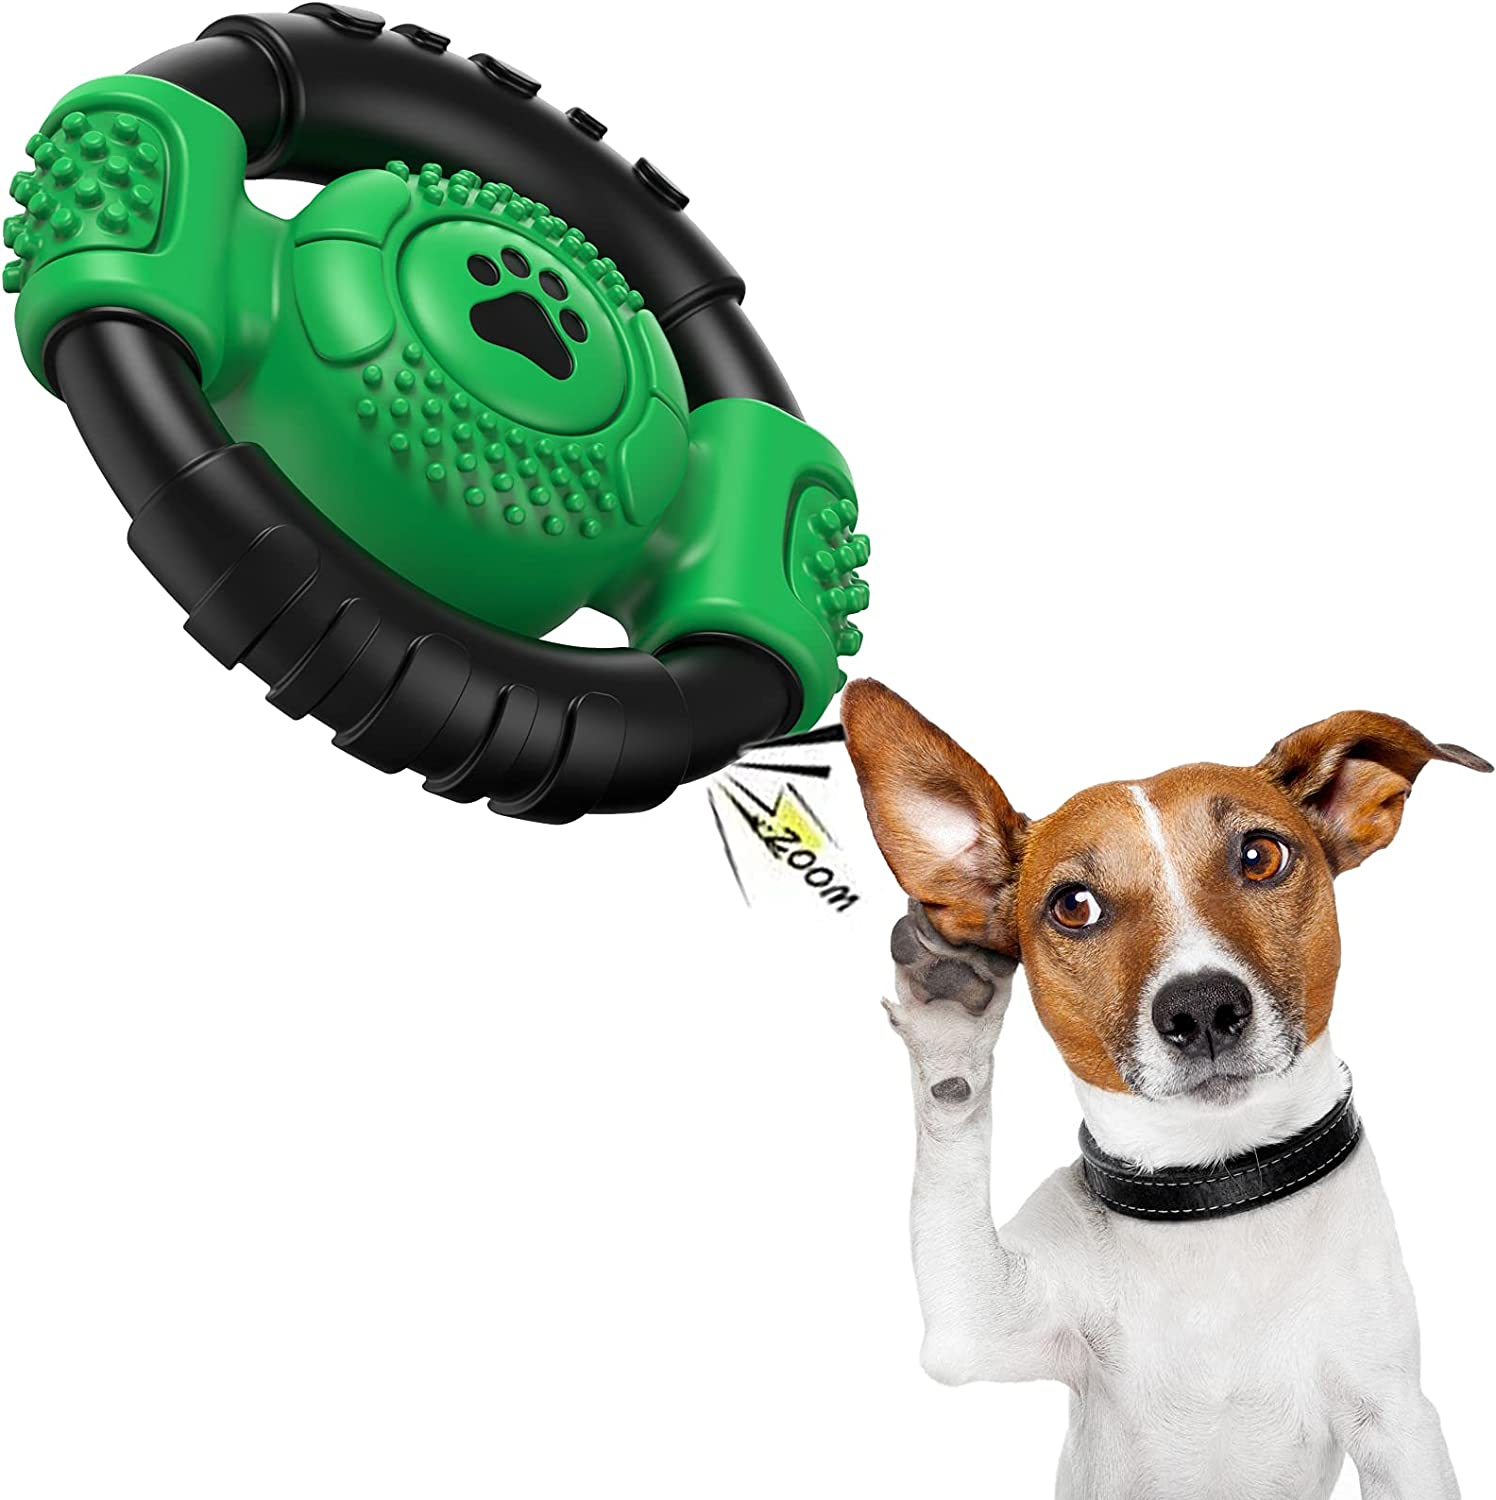 Dog Challenge the lowest price of Japan ☆ Chew Toys for Chewers Ranking TOP2 Aggressive Tough Squeaky